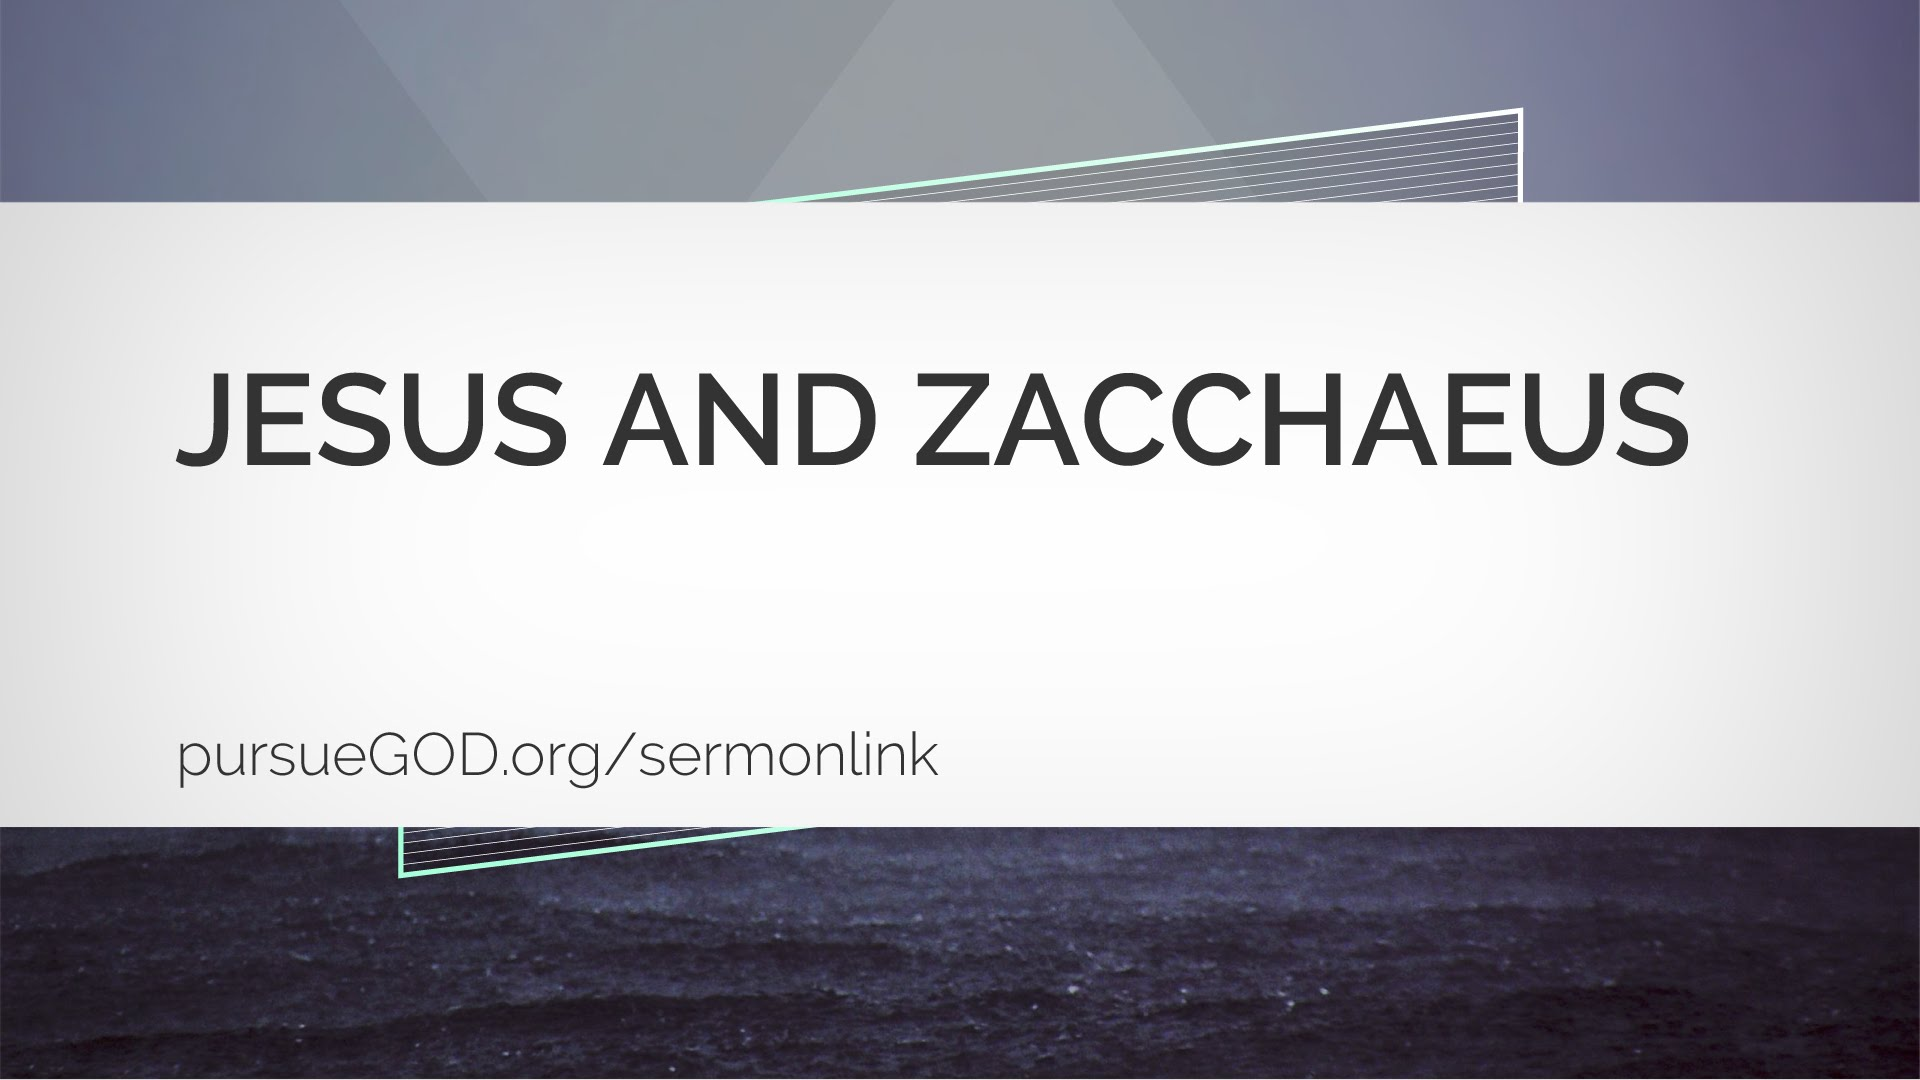 Jesus and Zacchaeus